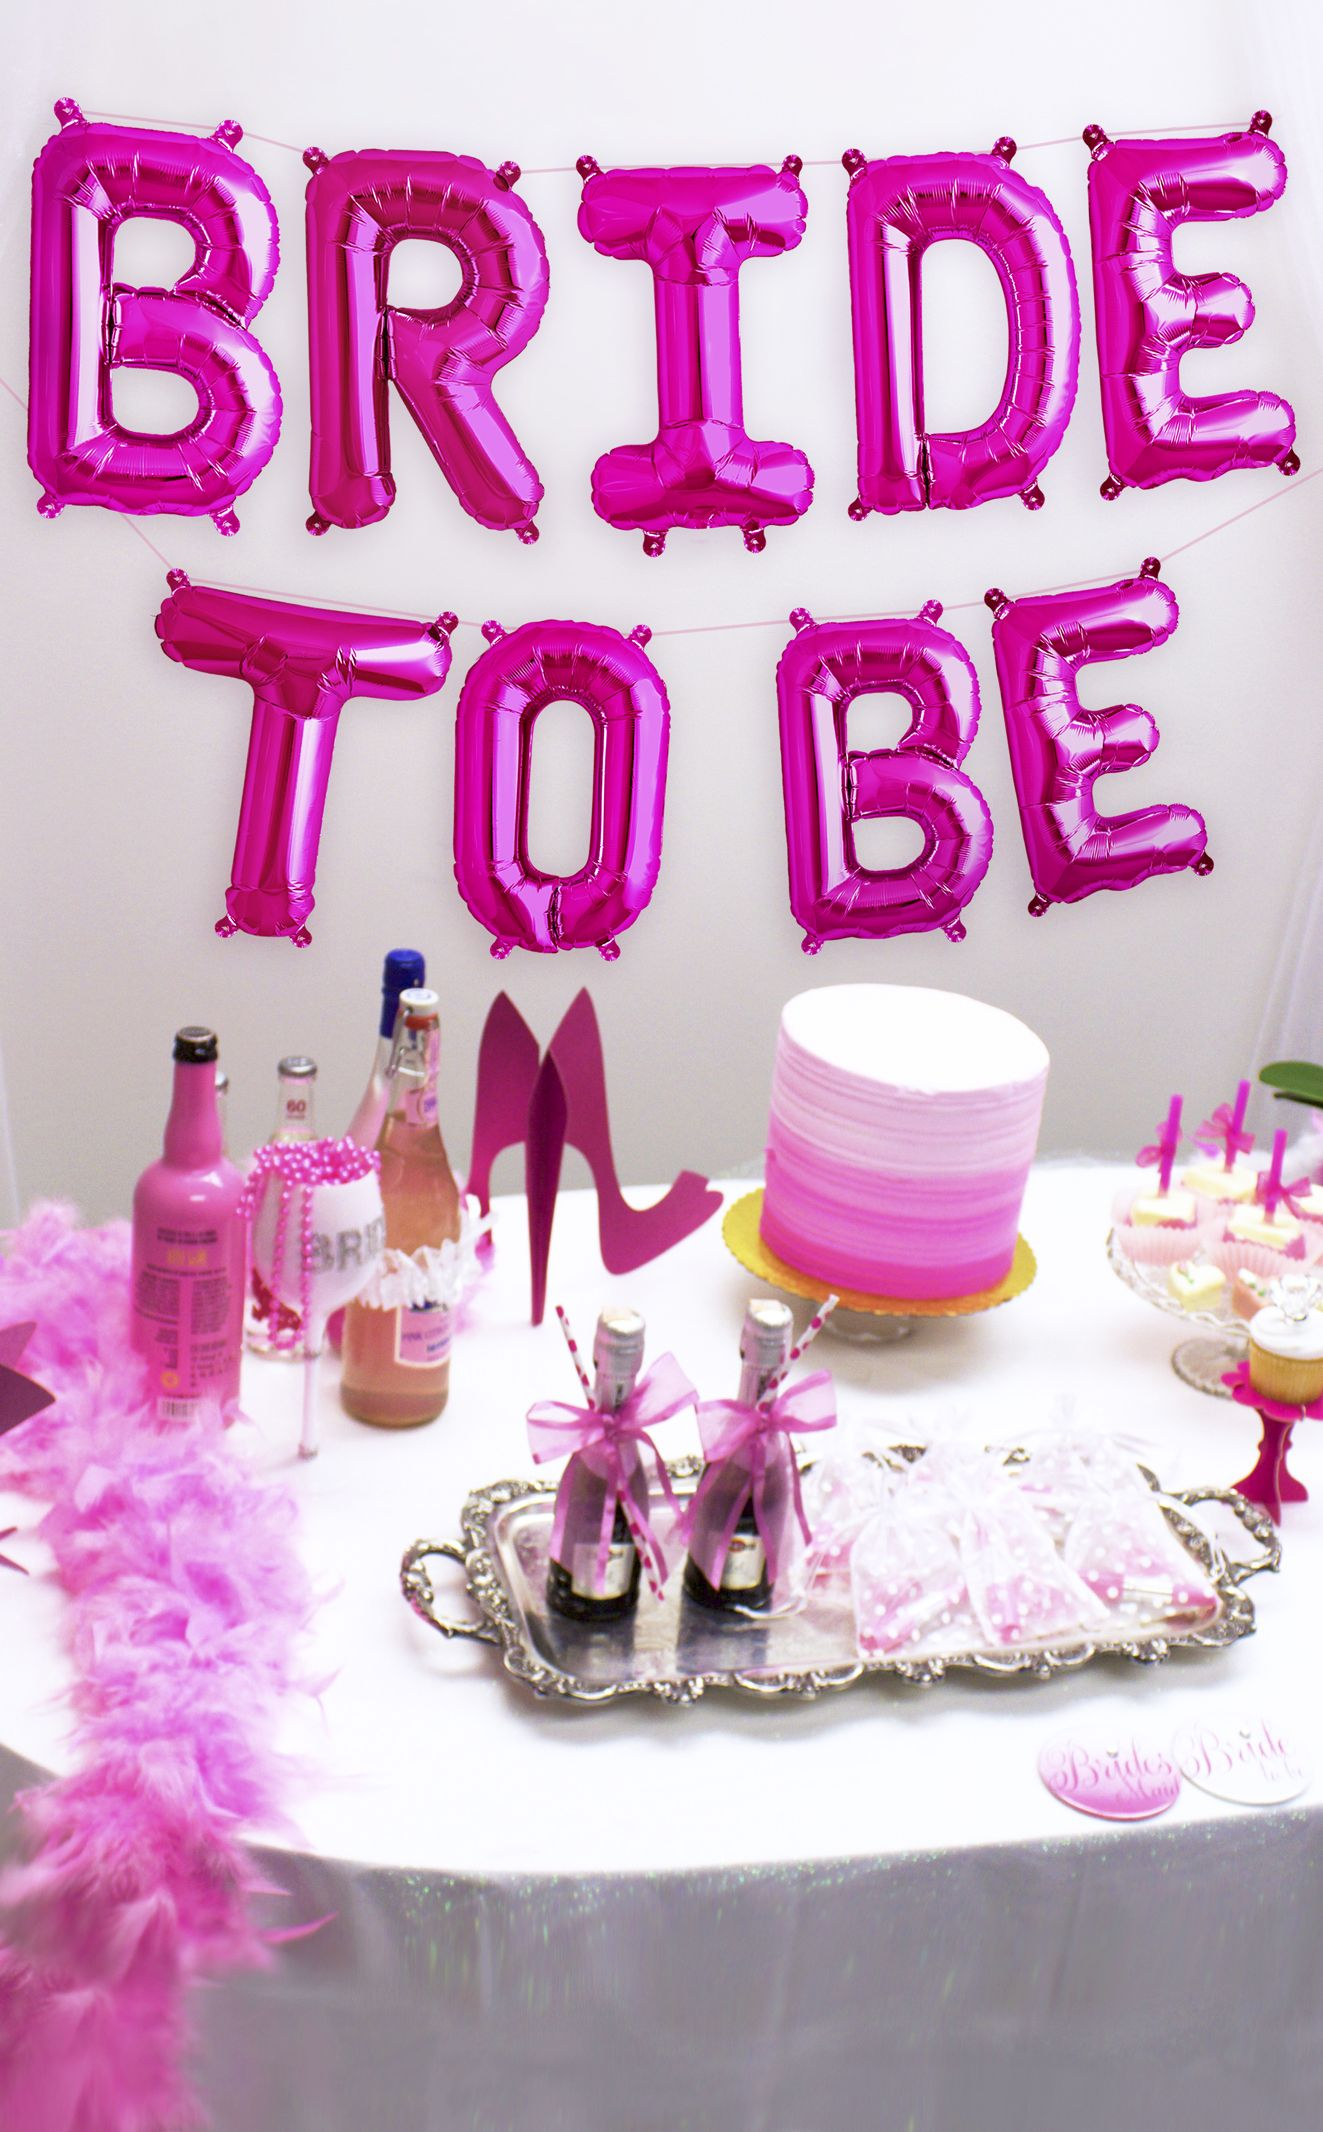 dd18c9b7216 Bachelorette Party Ideas - Hang these cute Bride to be balloons in hot pink  to celebrate the Bride available at The House of Bachelorette!